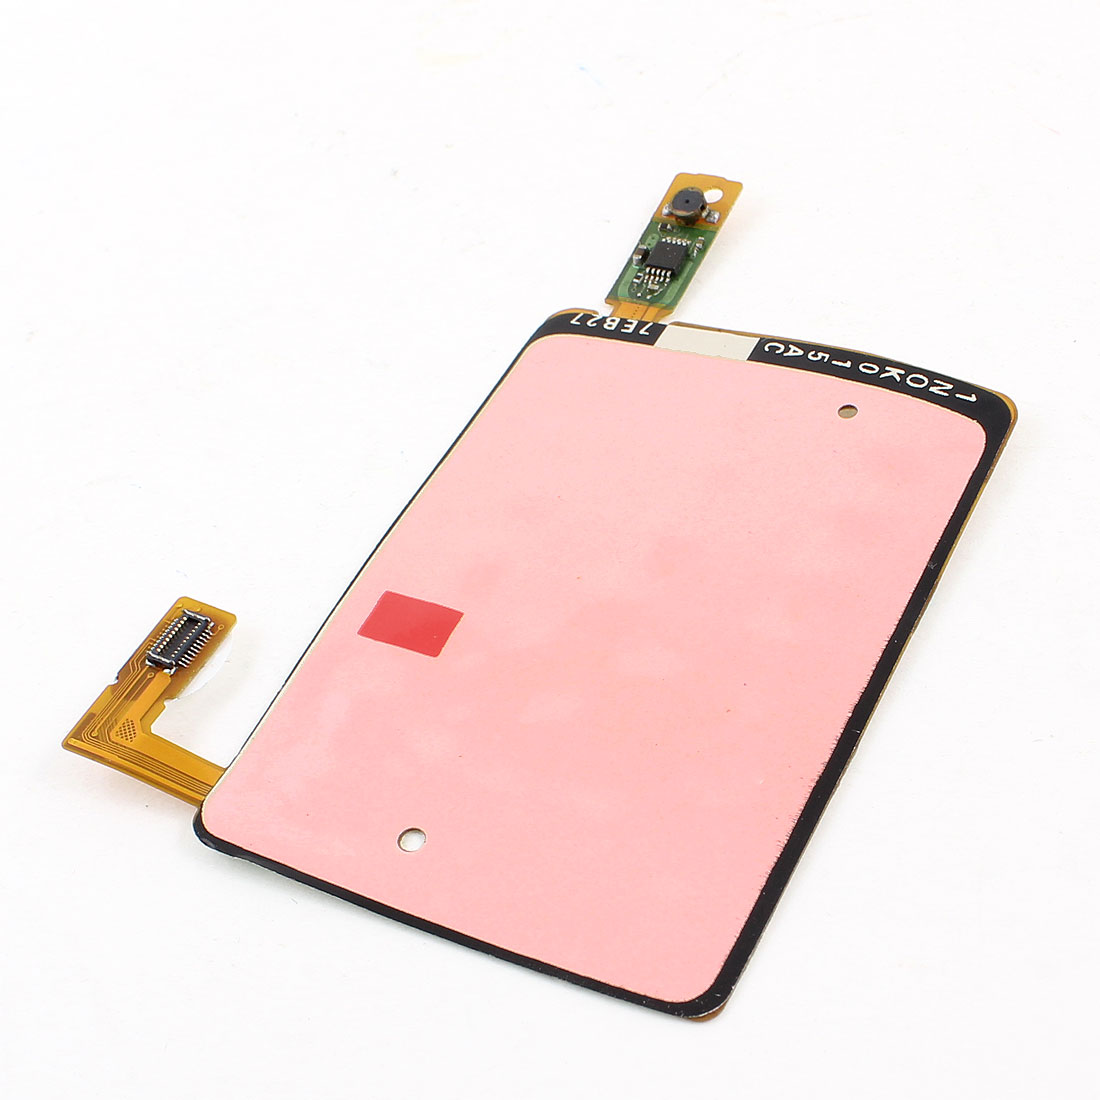 Cell Phone Mobilephone Repair Keypad Membrane Board for Nokia N76